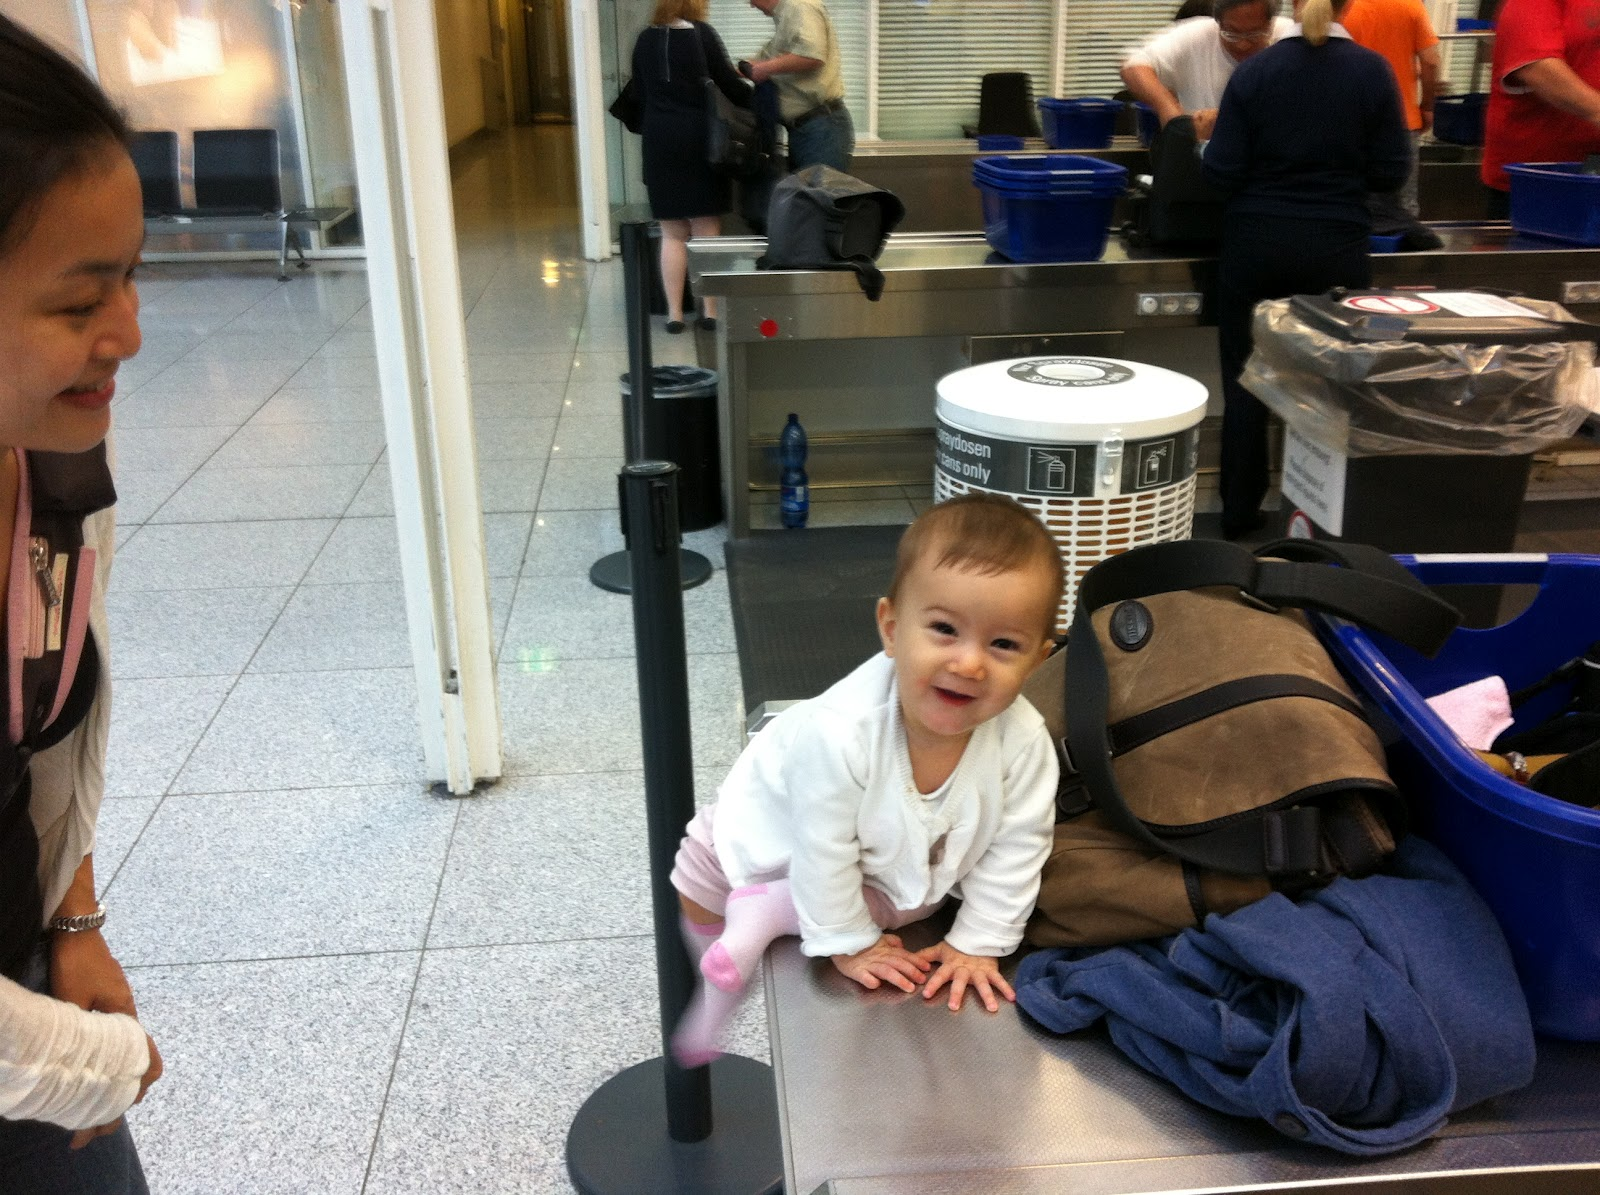 Hana's world: Germany trip, The journey, I'm 7 months old